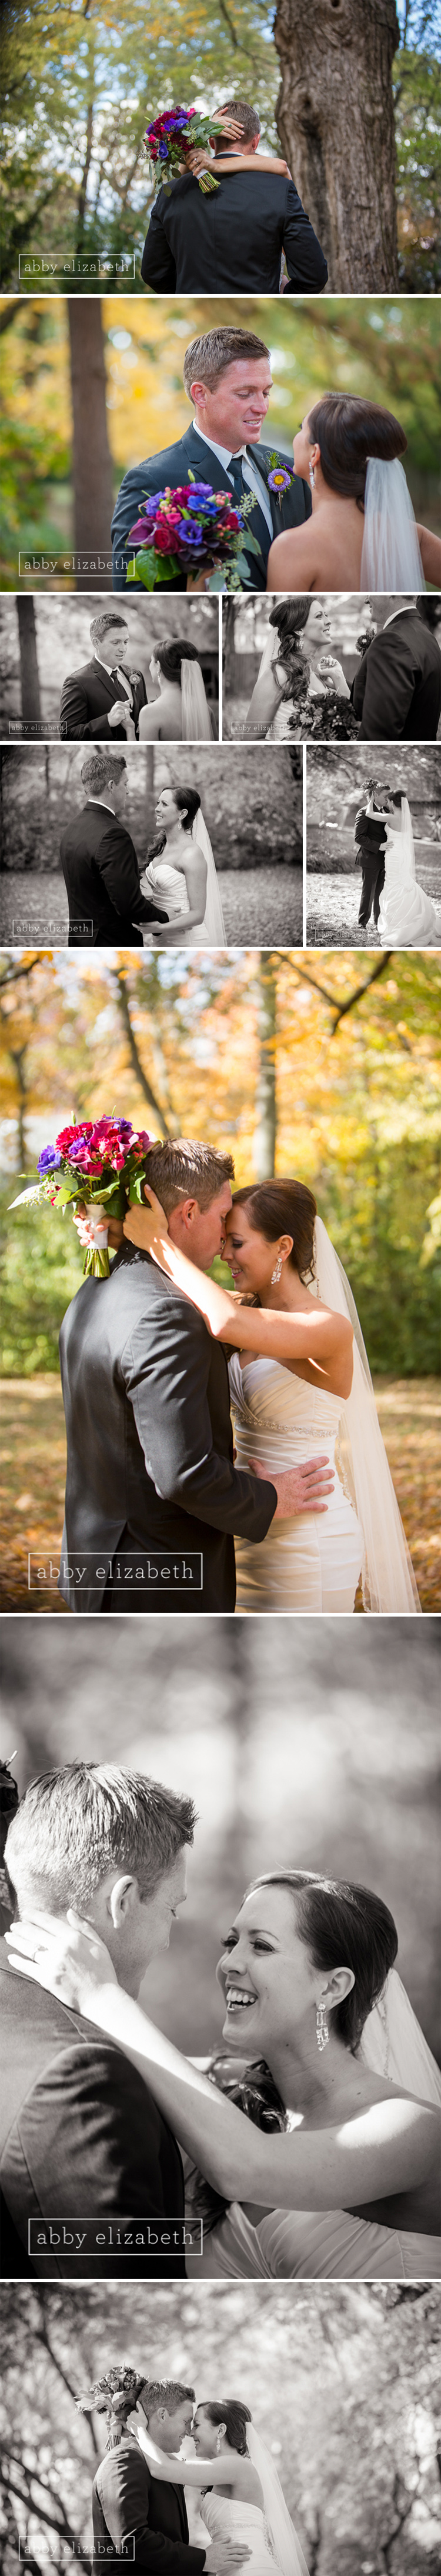 Fall_Wedding_Knoxville_TN_18.jpg